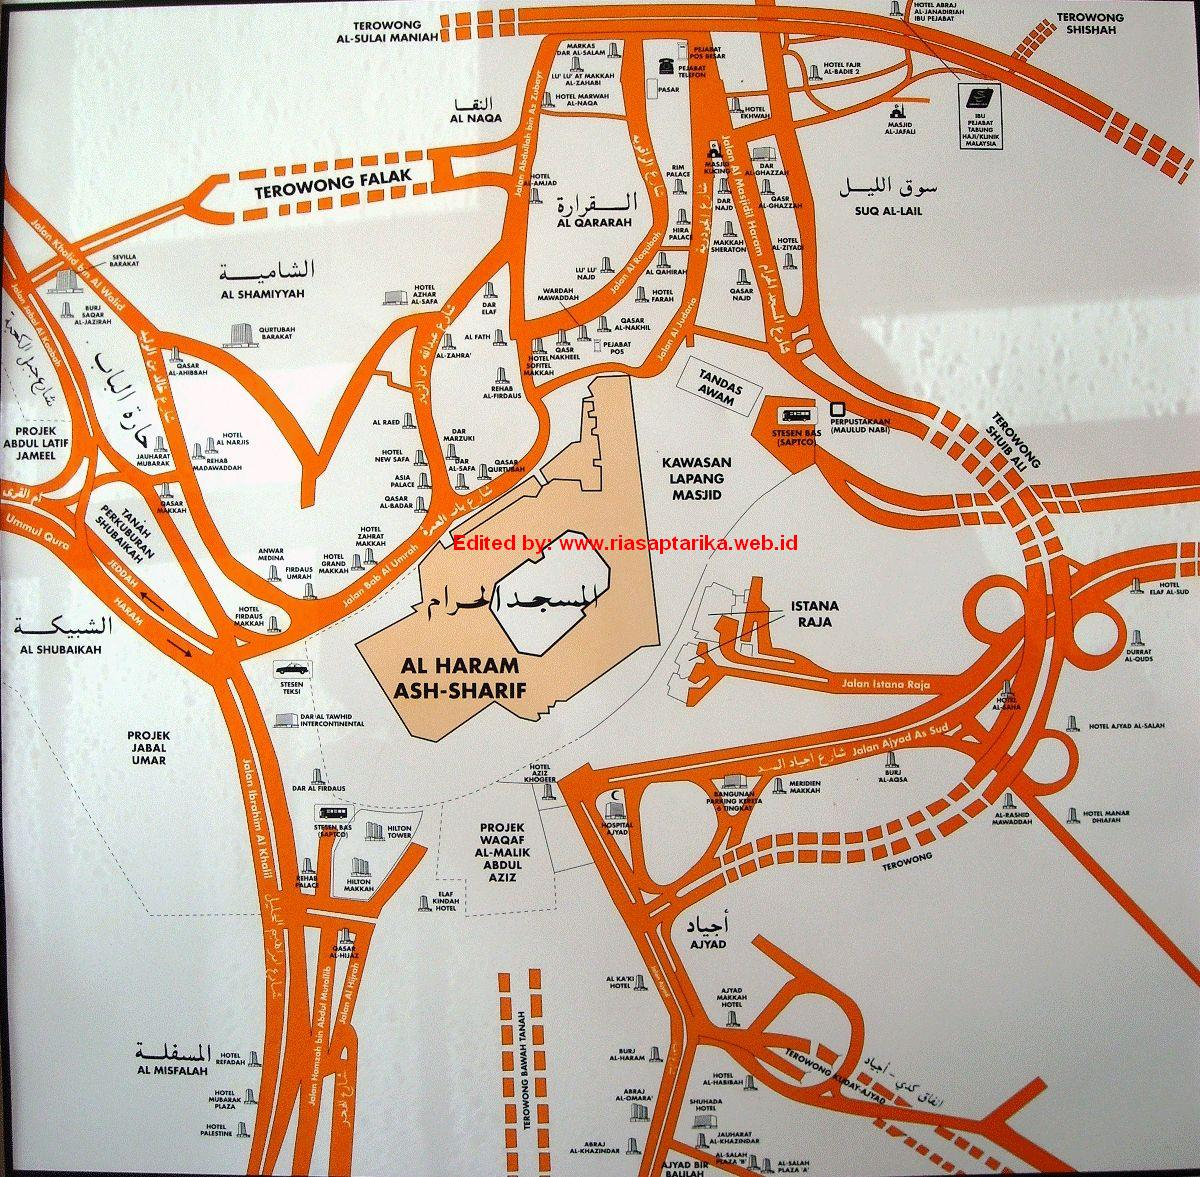 http://alfalahku.files.wordpress.com/2008/10/map_makkah_f.jpg